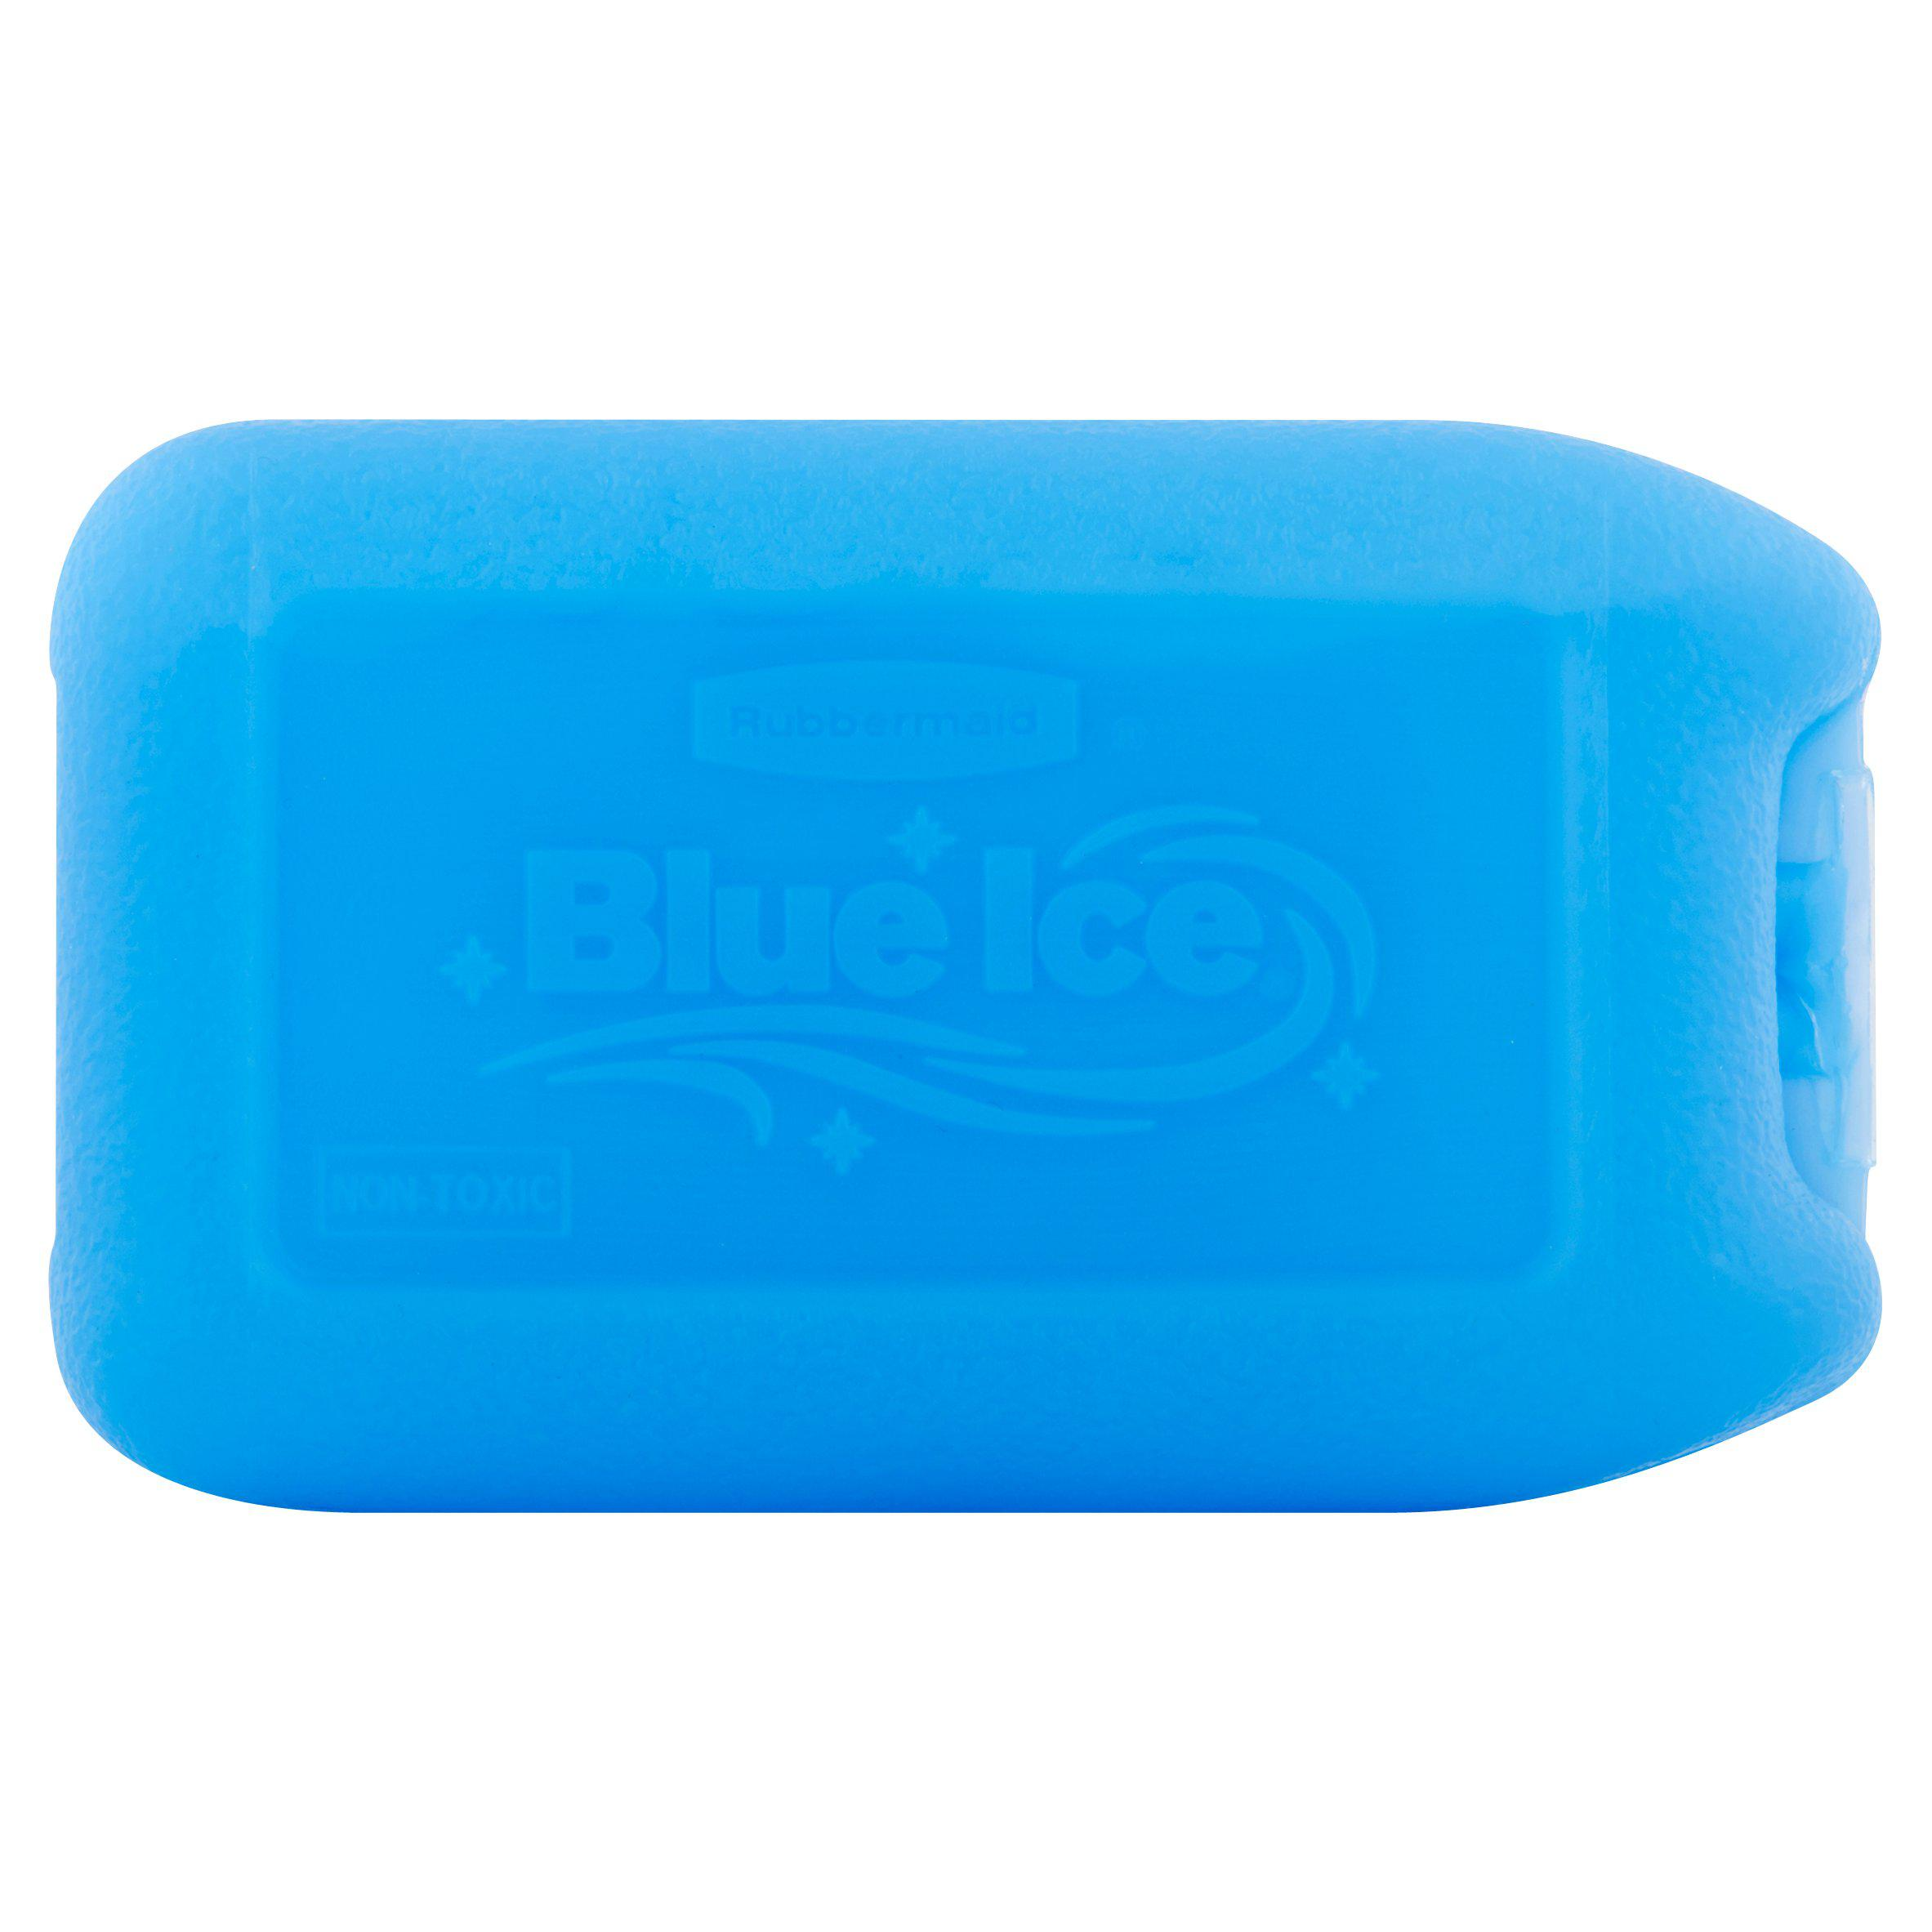 Rubbermaid Blue Ice Mini Reusable Ice Pack